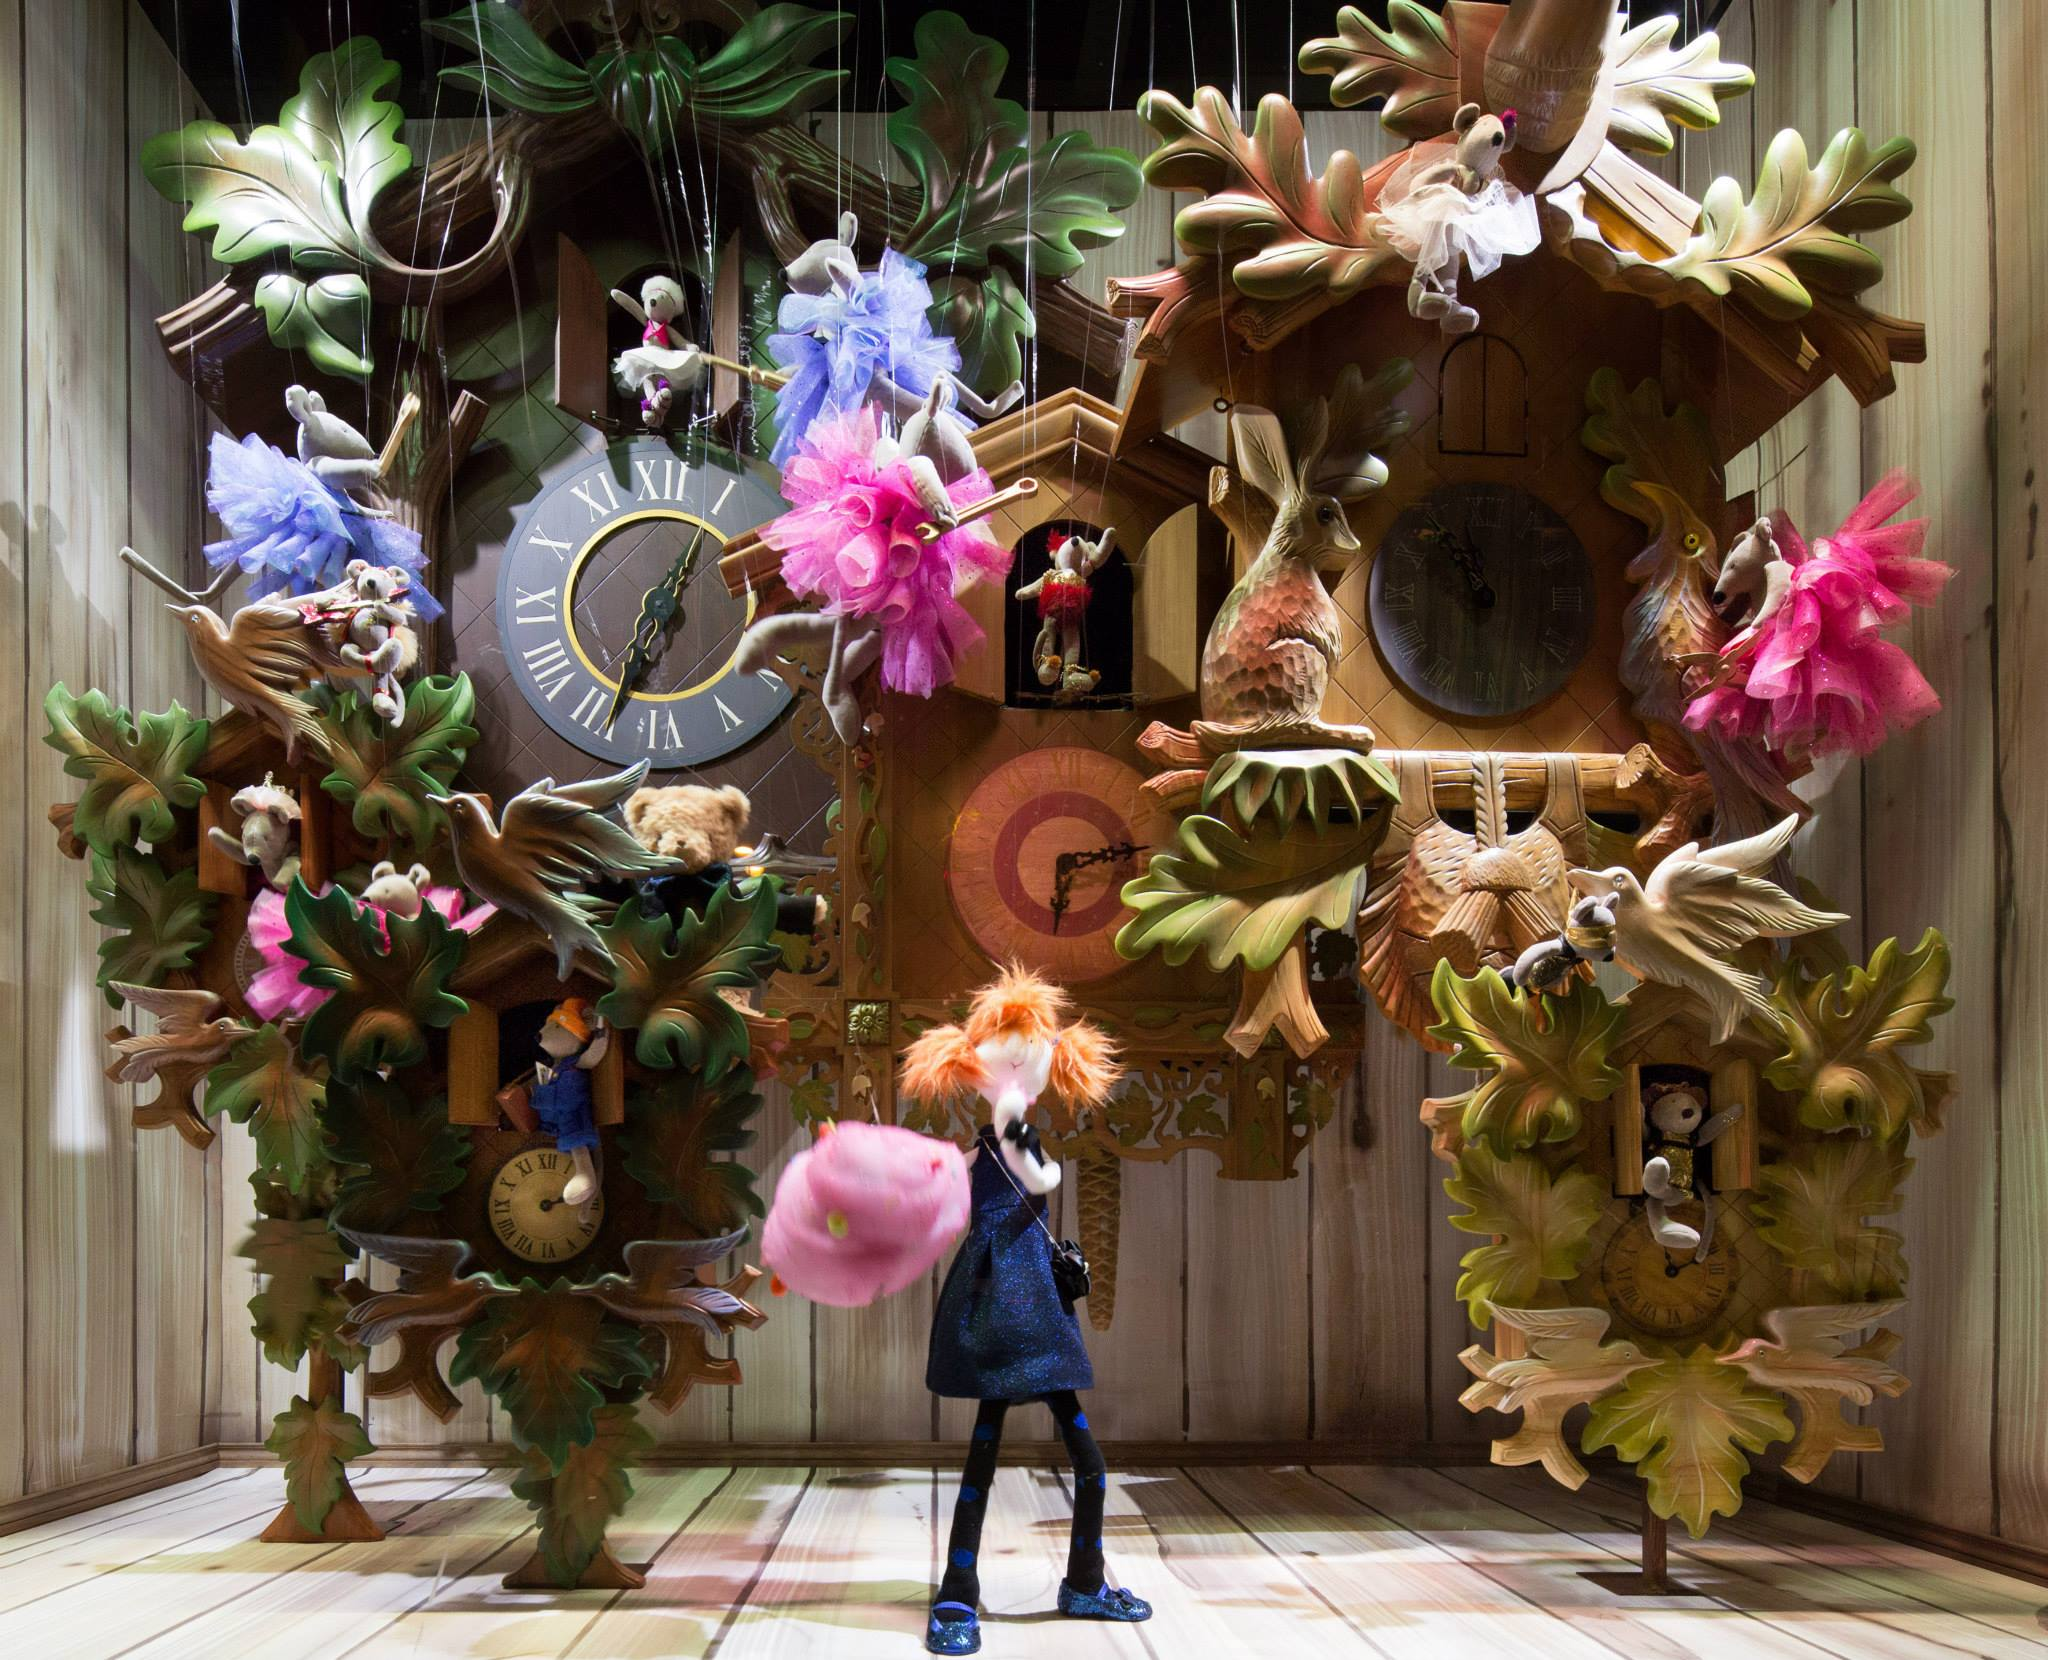 Anthropologie Holiday Windows 2010 | Maria Day Photoblog |Holiday Window Displays